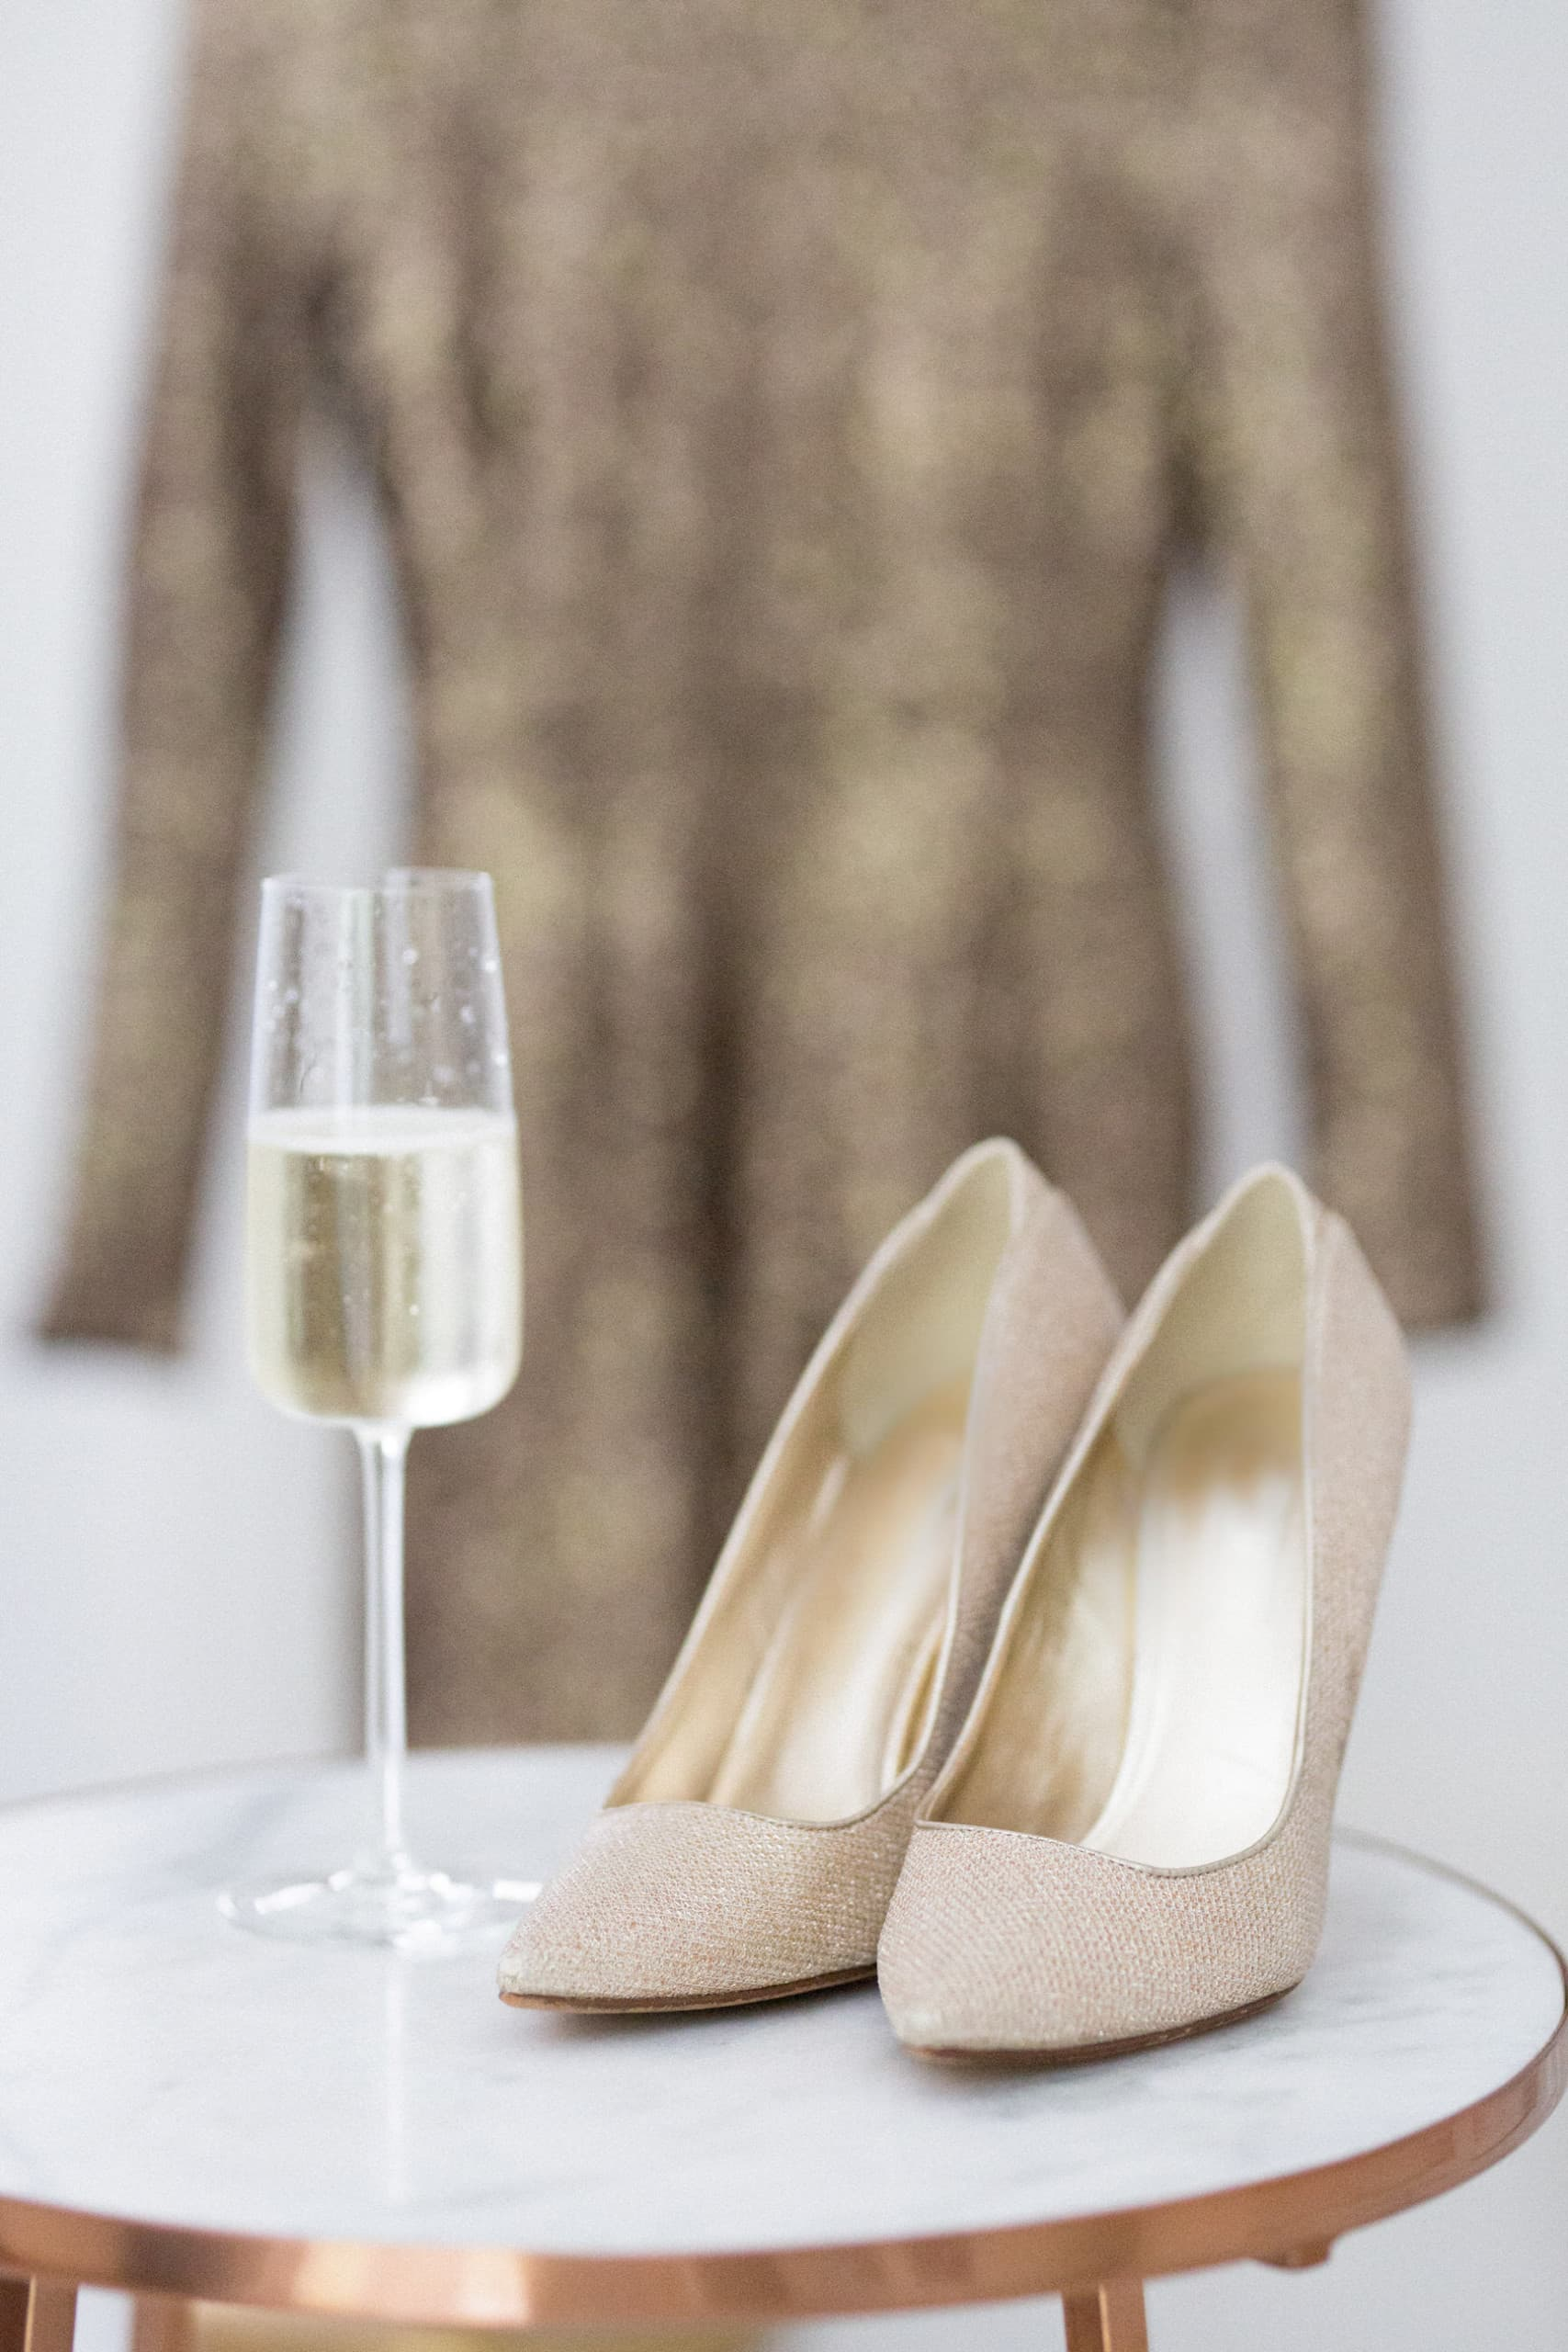 champagne sparkly dress going out bubbles party time celebration shoes